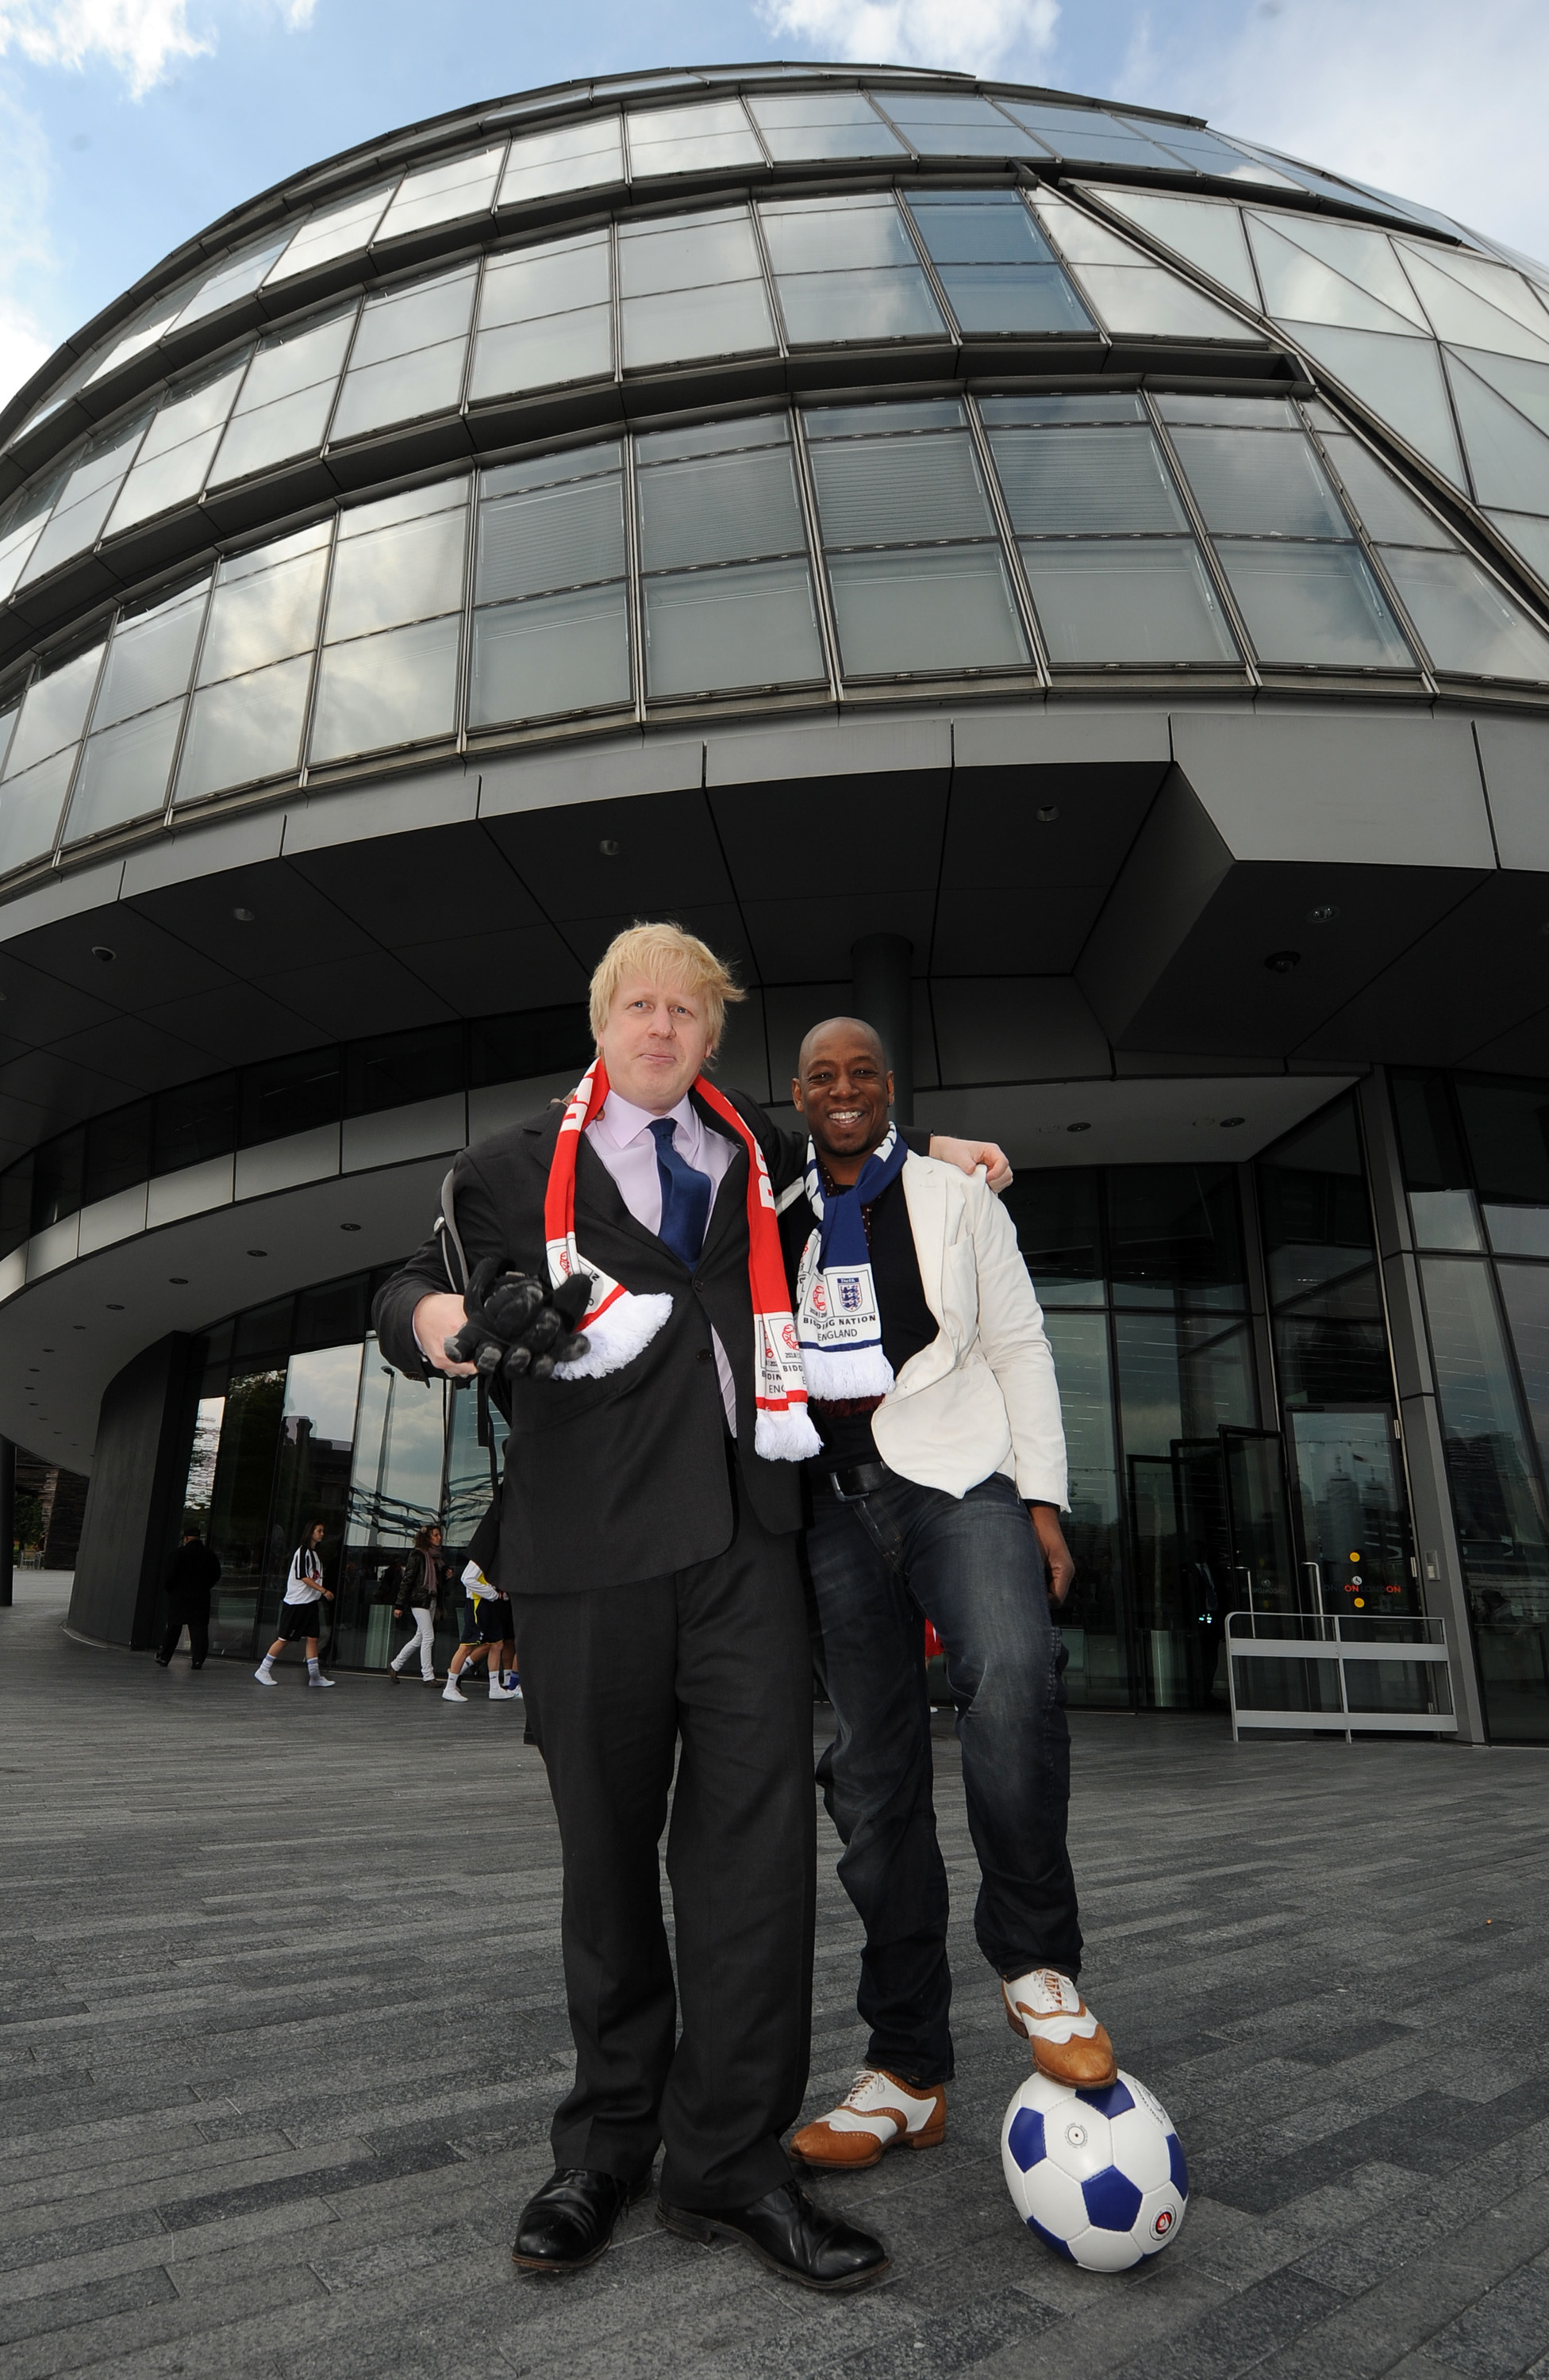 London Mayor Boris Johnson (left) speaks with ex footballer Ian Wright after taking receipt of London's official copy of the final World Cup 2018 bid outside City Hall, London.